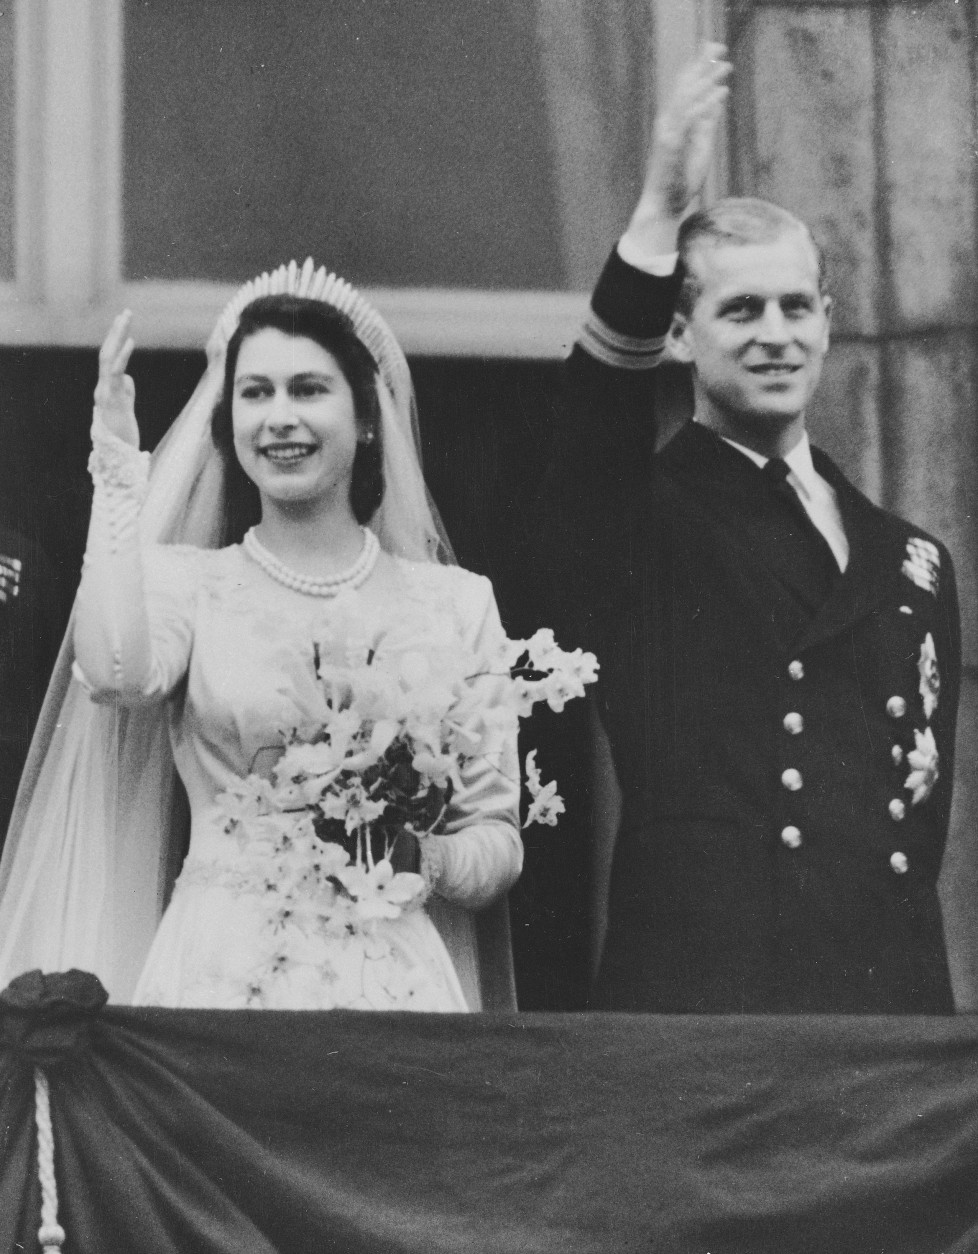 Princess Elizabeth and Prince Philip, the Duke of Edinburgh, wave to the crowds from a balcony of Buckingham Palace after their return from Westminster Abbey following their marriage, Nov. 20, 1947. (AP Photo)